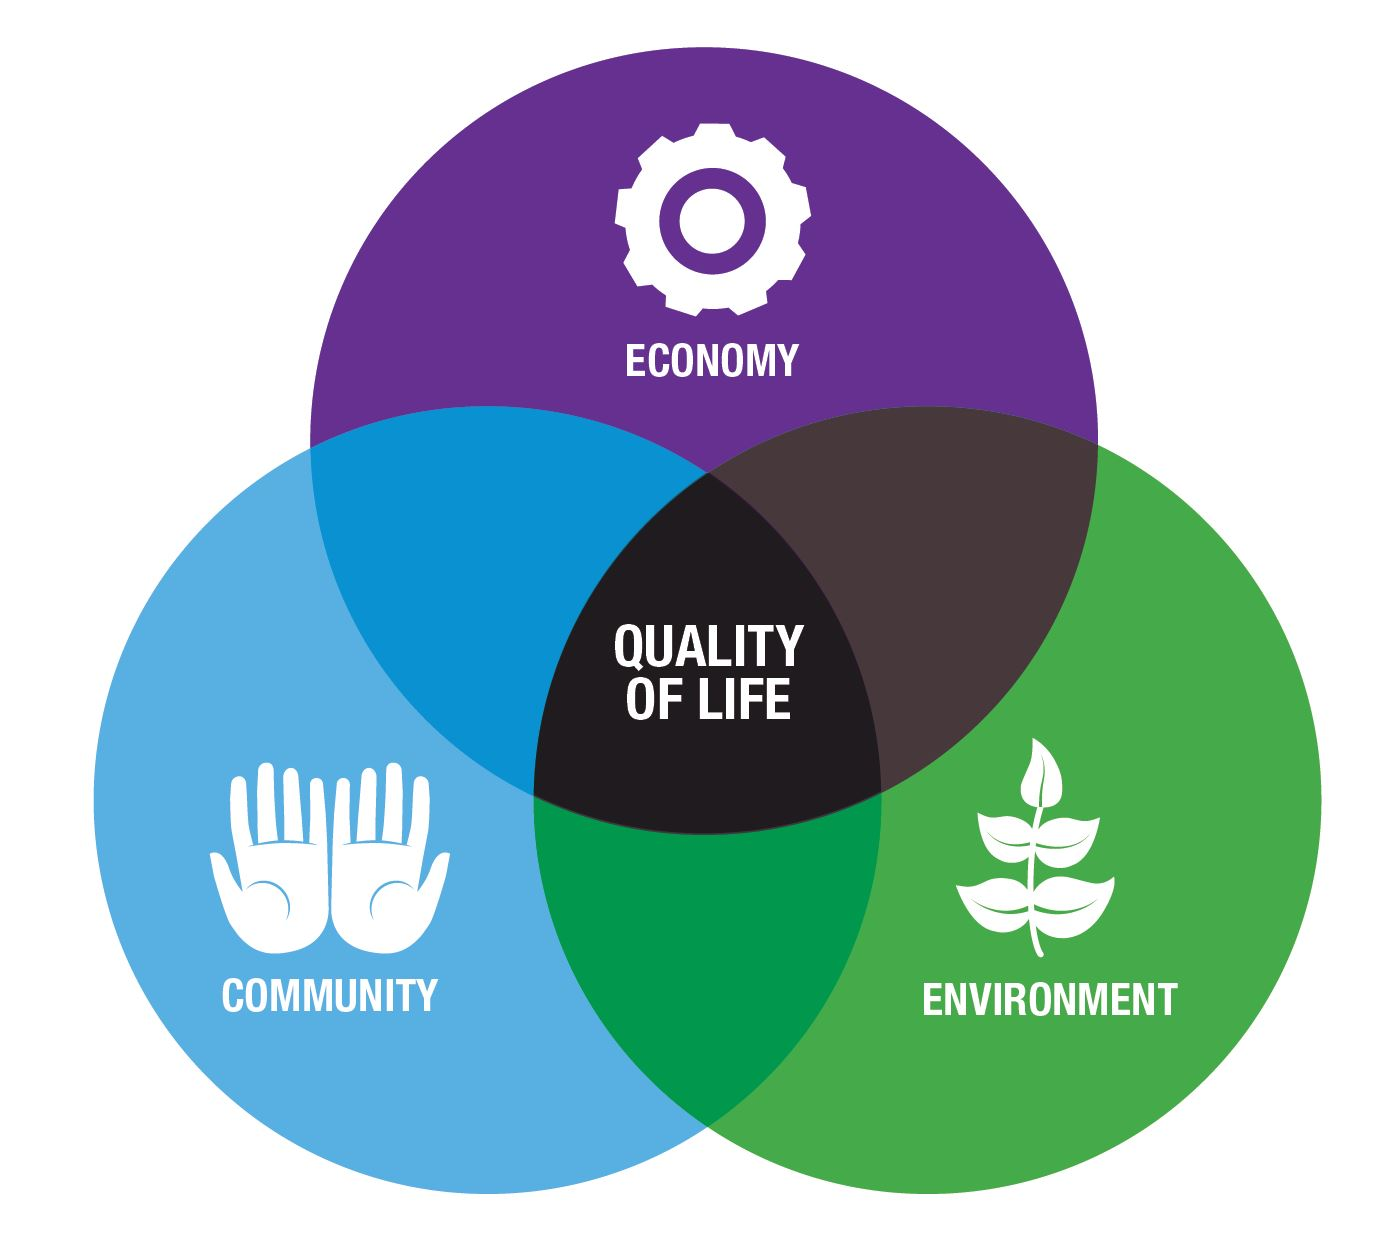 Quality of Life Circle